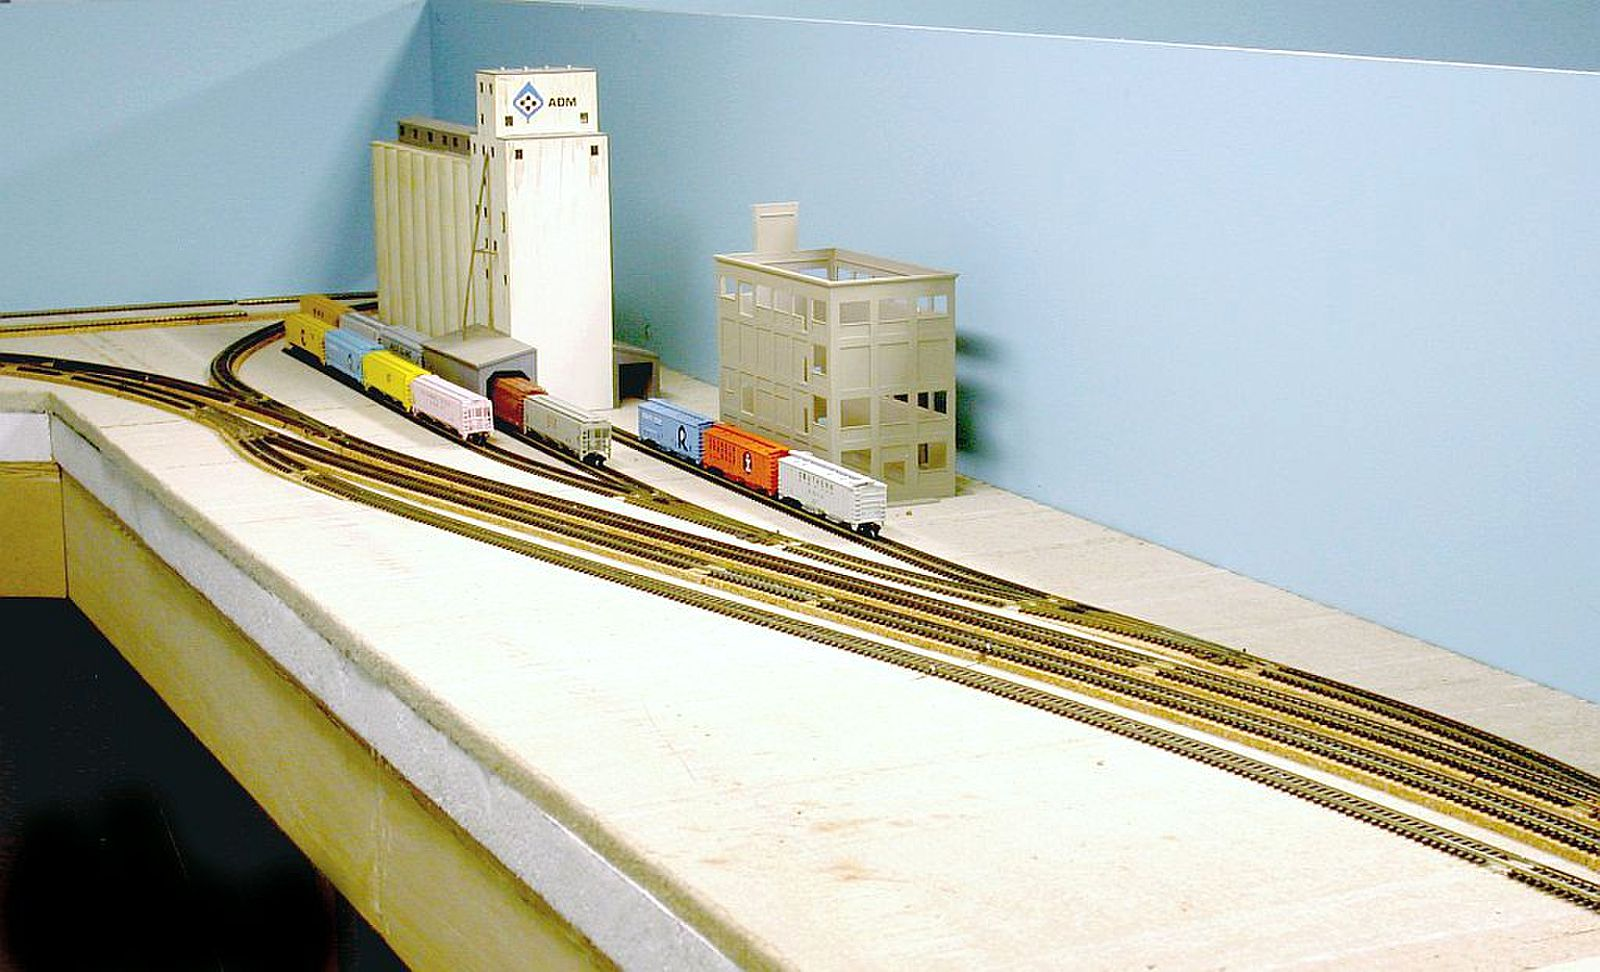 Progress on The Little Rock Line - page 1 - Layout Engineering